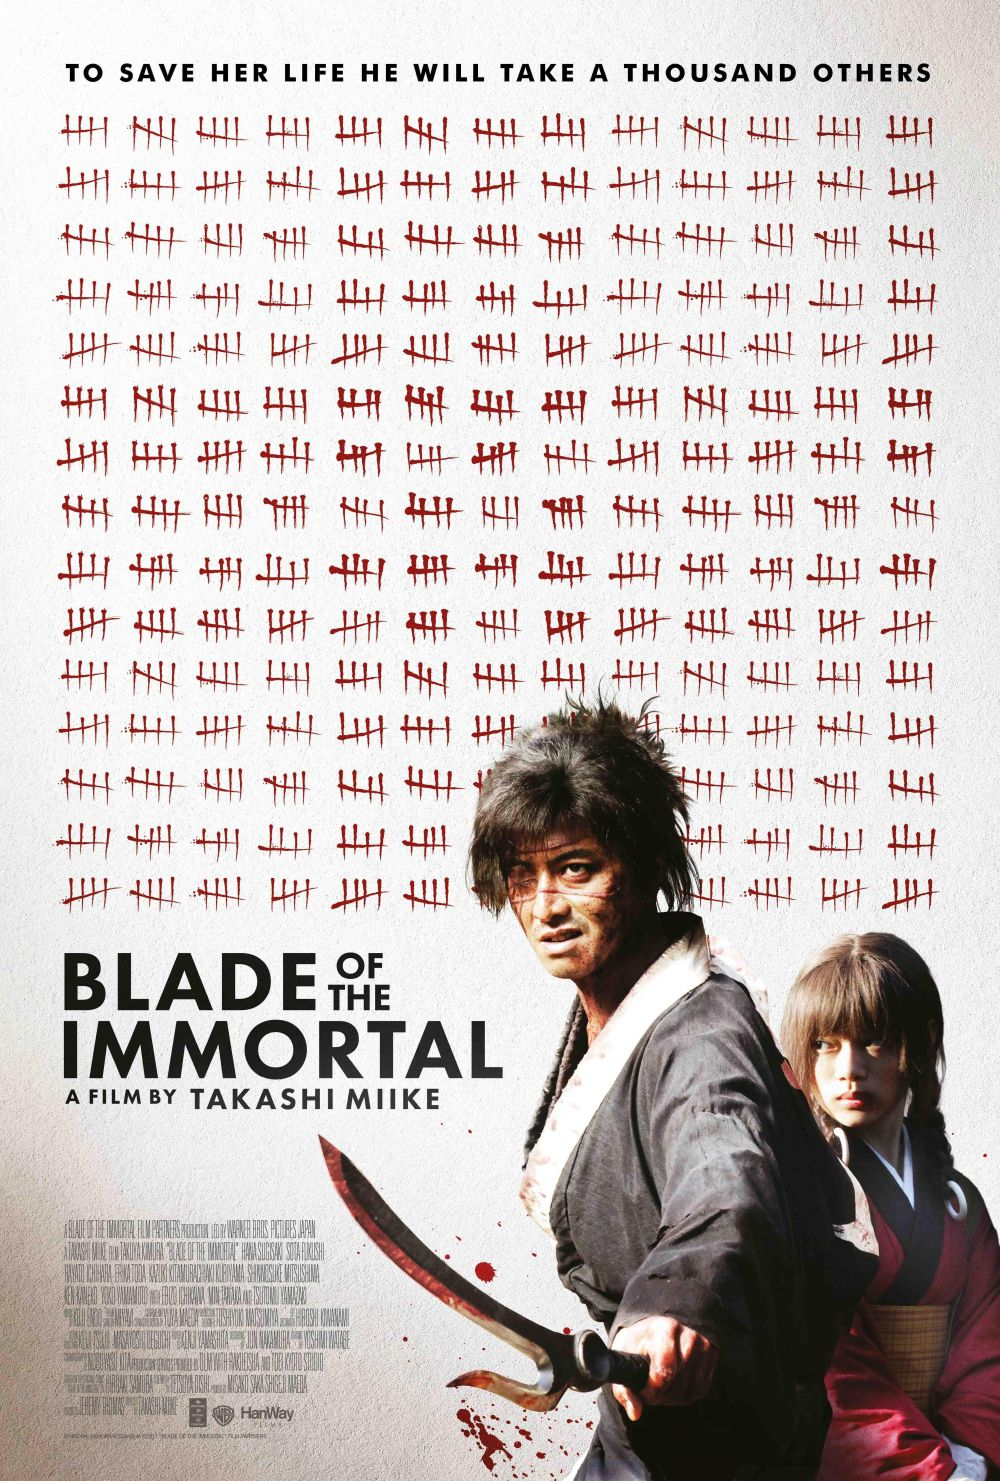 Blade of the Immortal - per salvare la vita di lei dovrà prendere la vita di altri 100 - to save her life he will take a thousand others  live action - poster